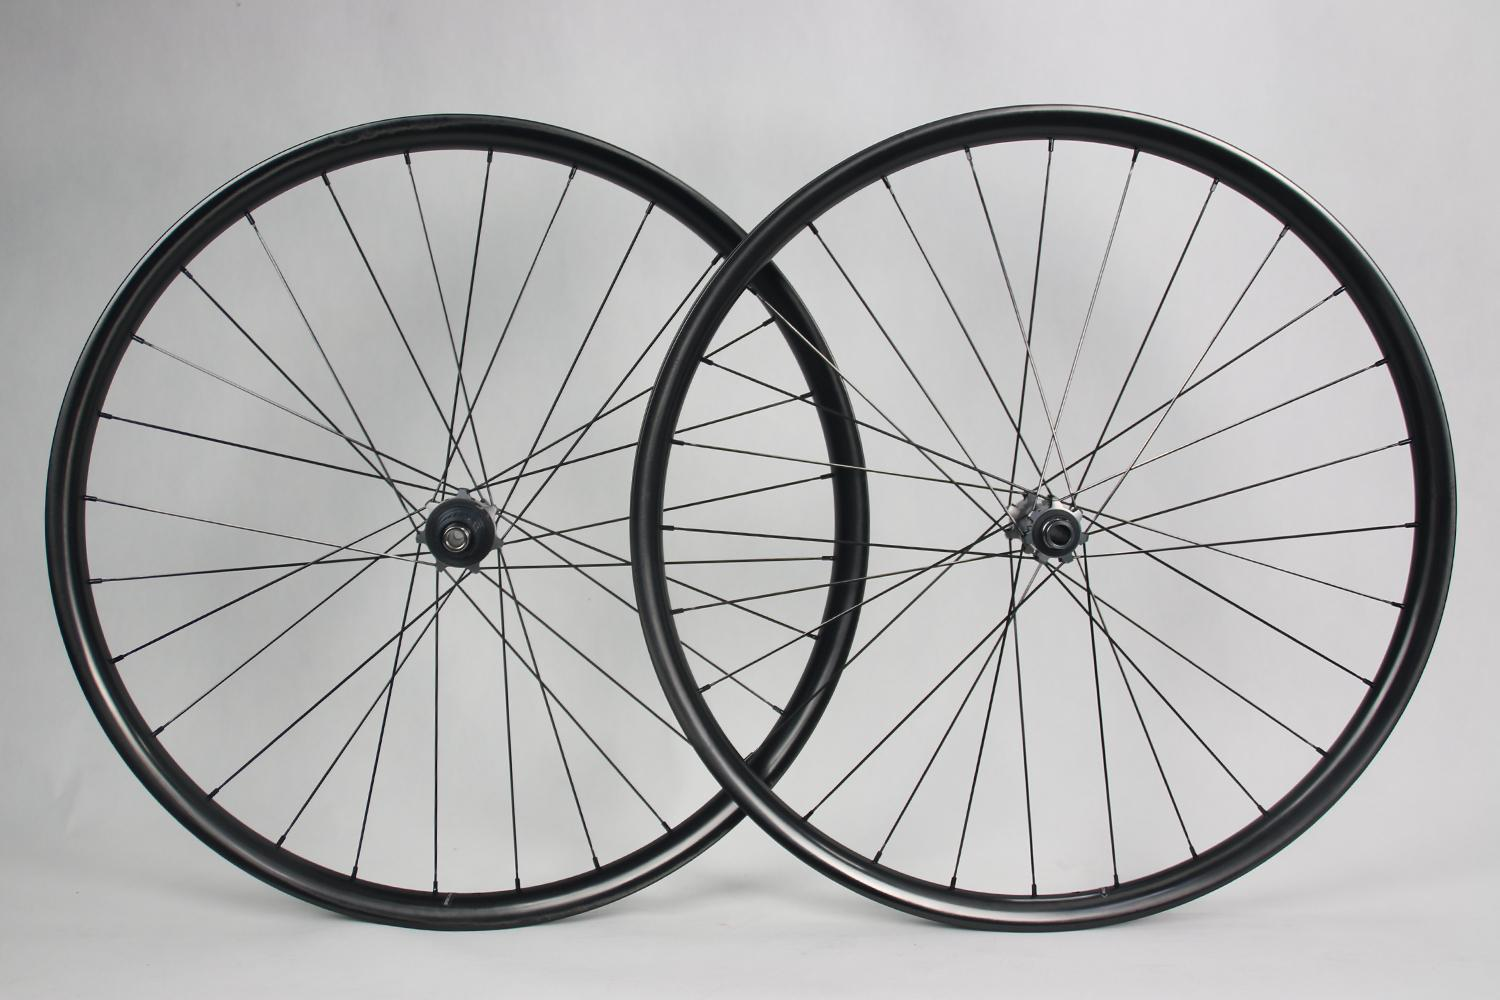 am930-paintless-mtb-carbon-wheelset-with-shimano-xtr-boost-hubs